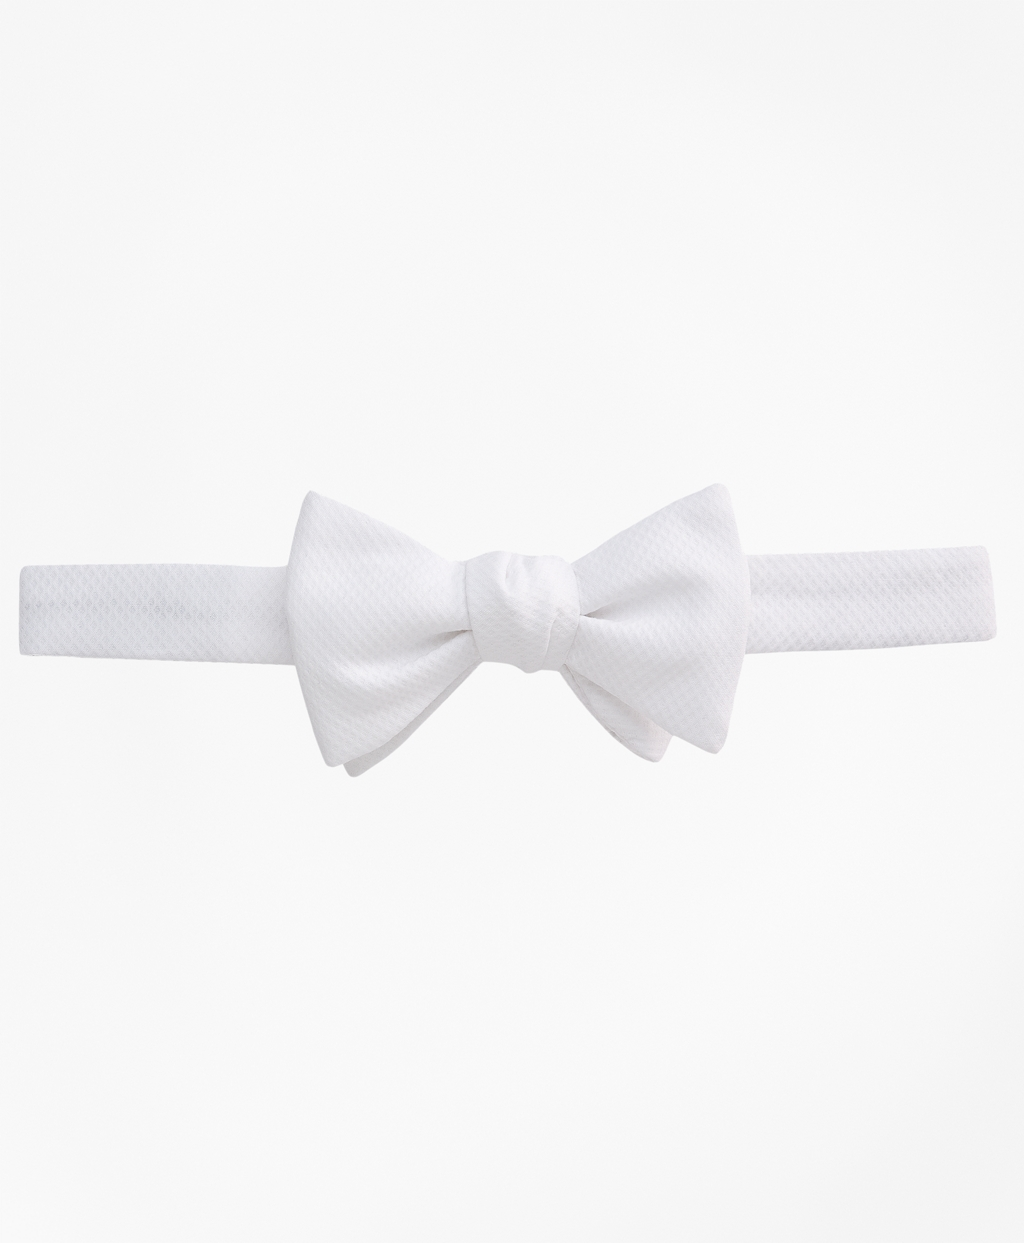 Edwardian Titanic Men's Formal Tuxedo Guide Brooks Brothers Mens Pique Pre-Tied Bow Tie $89.50 AT vintagedancer.com